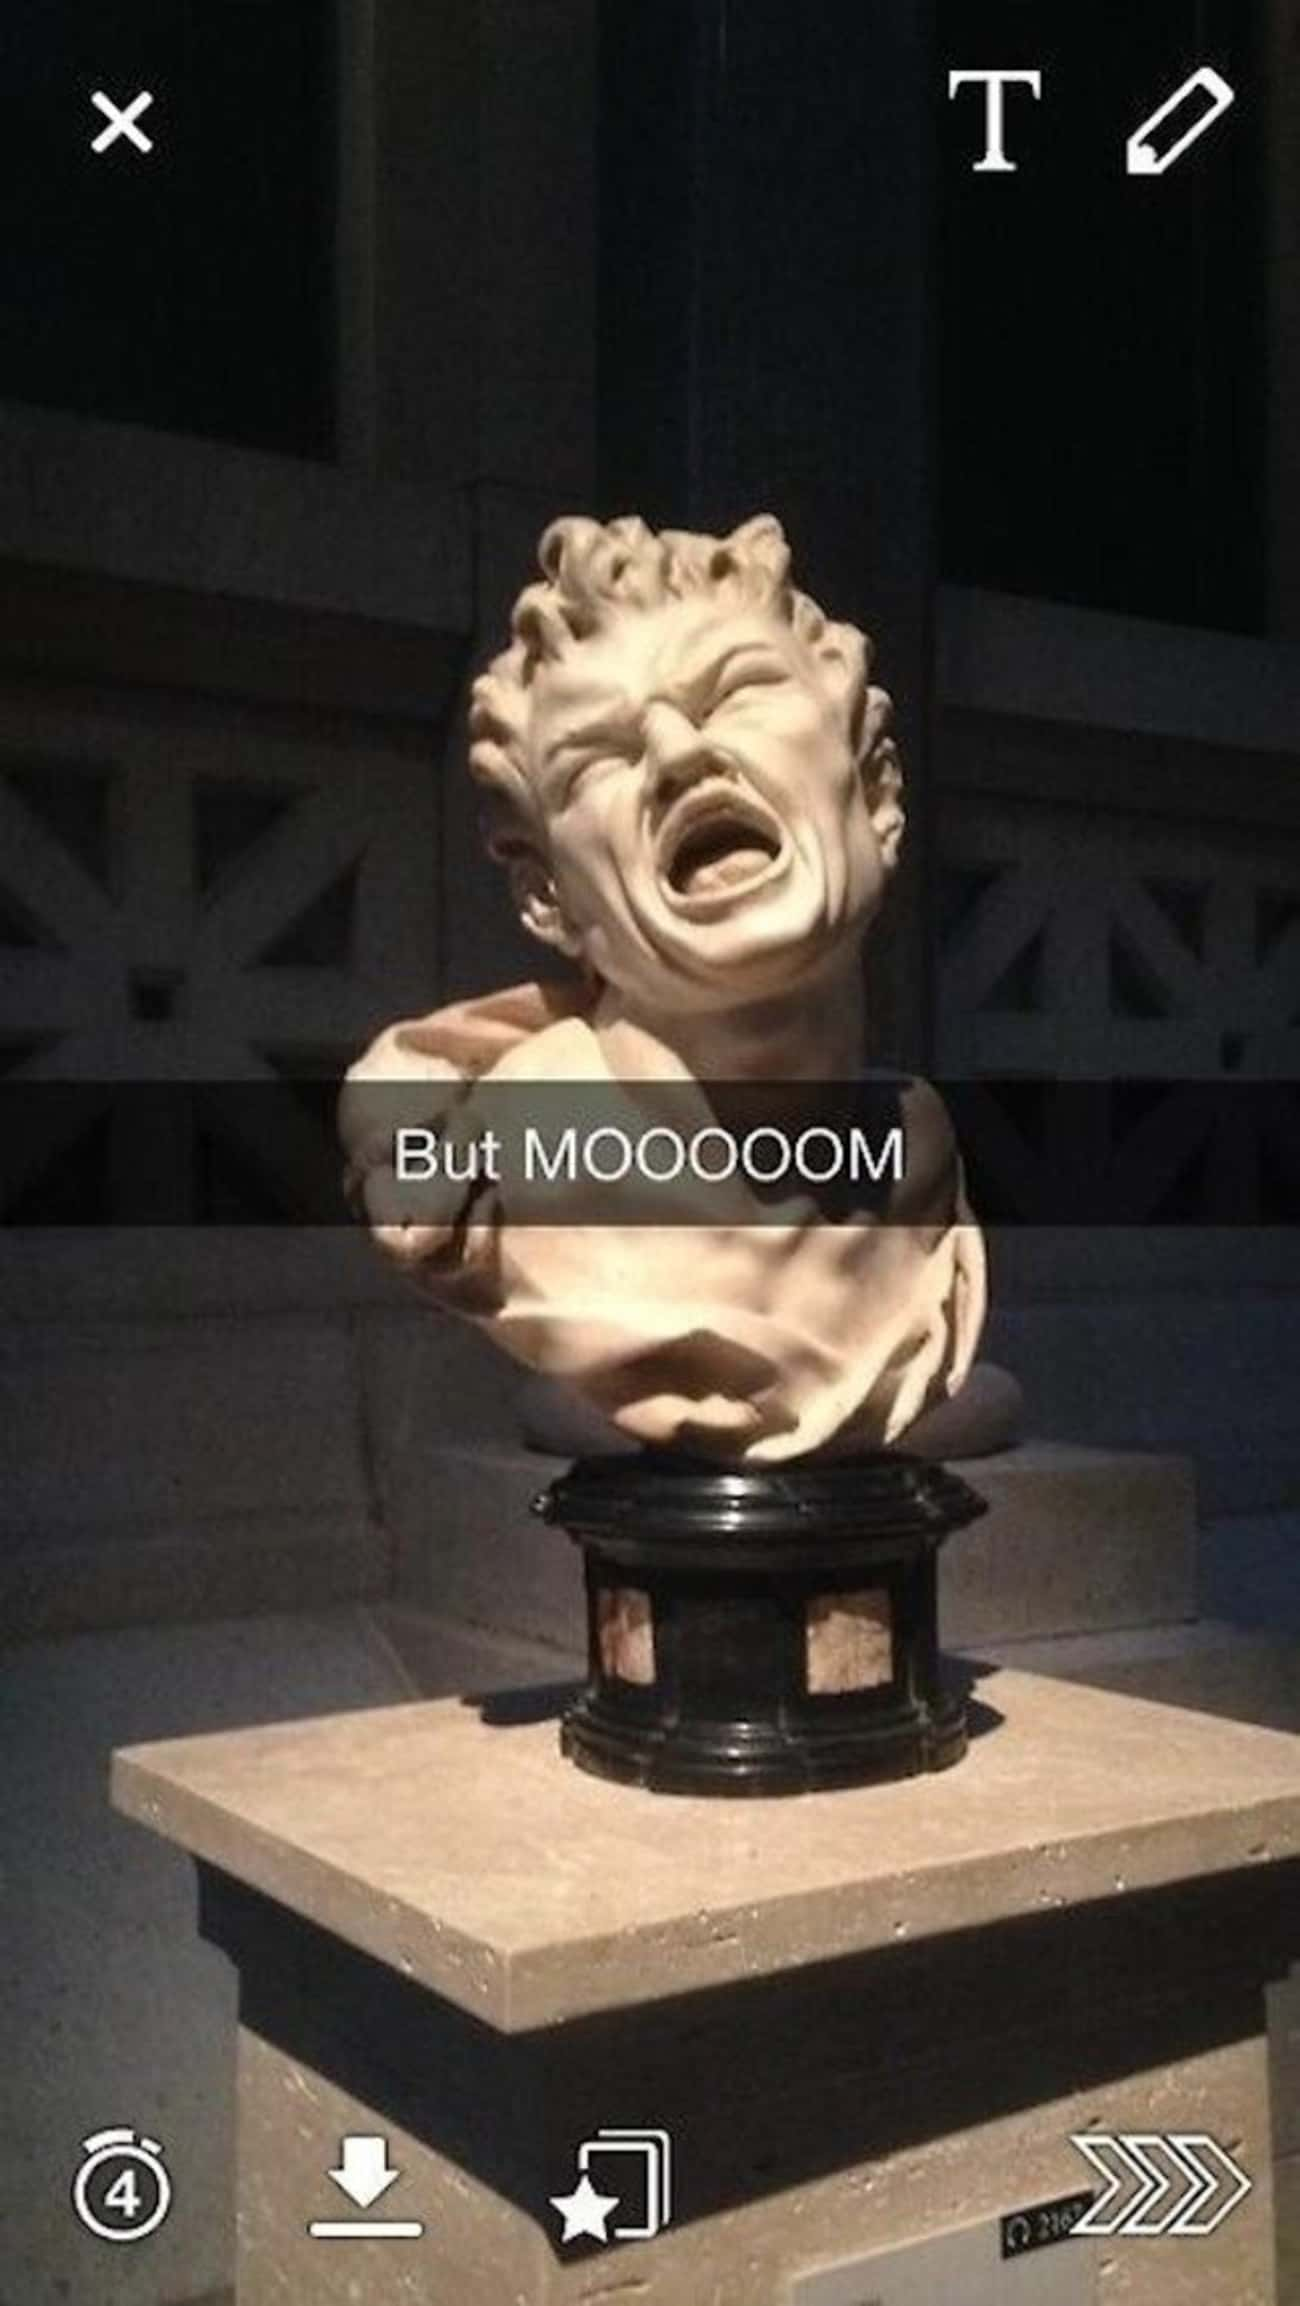 All The Other Marble Heads Are Doing It!